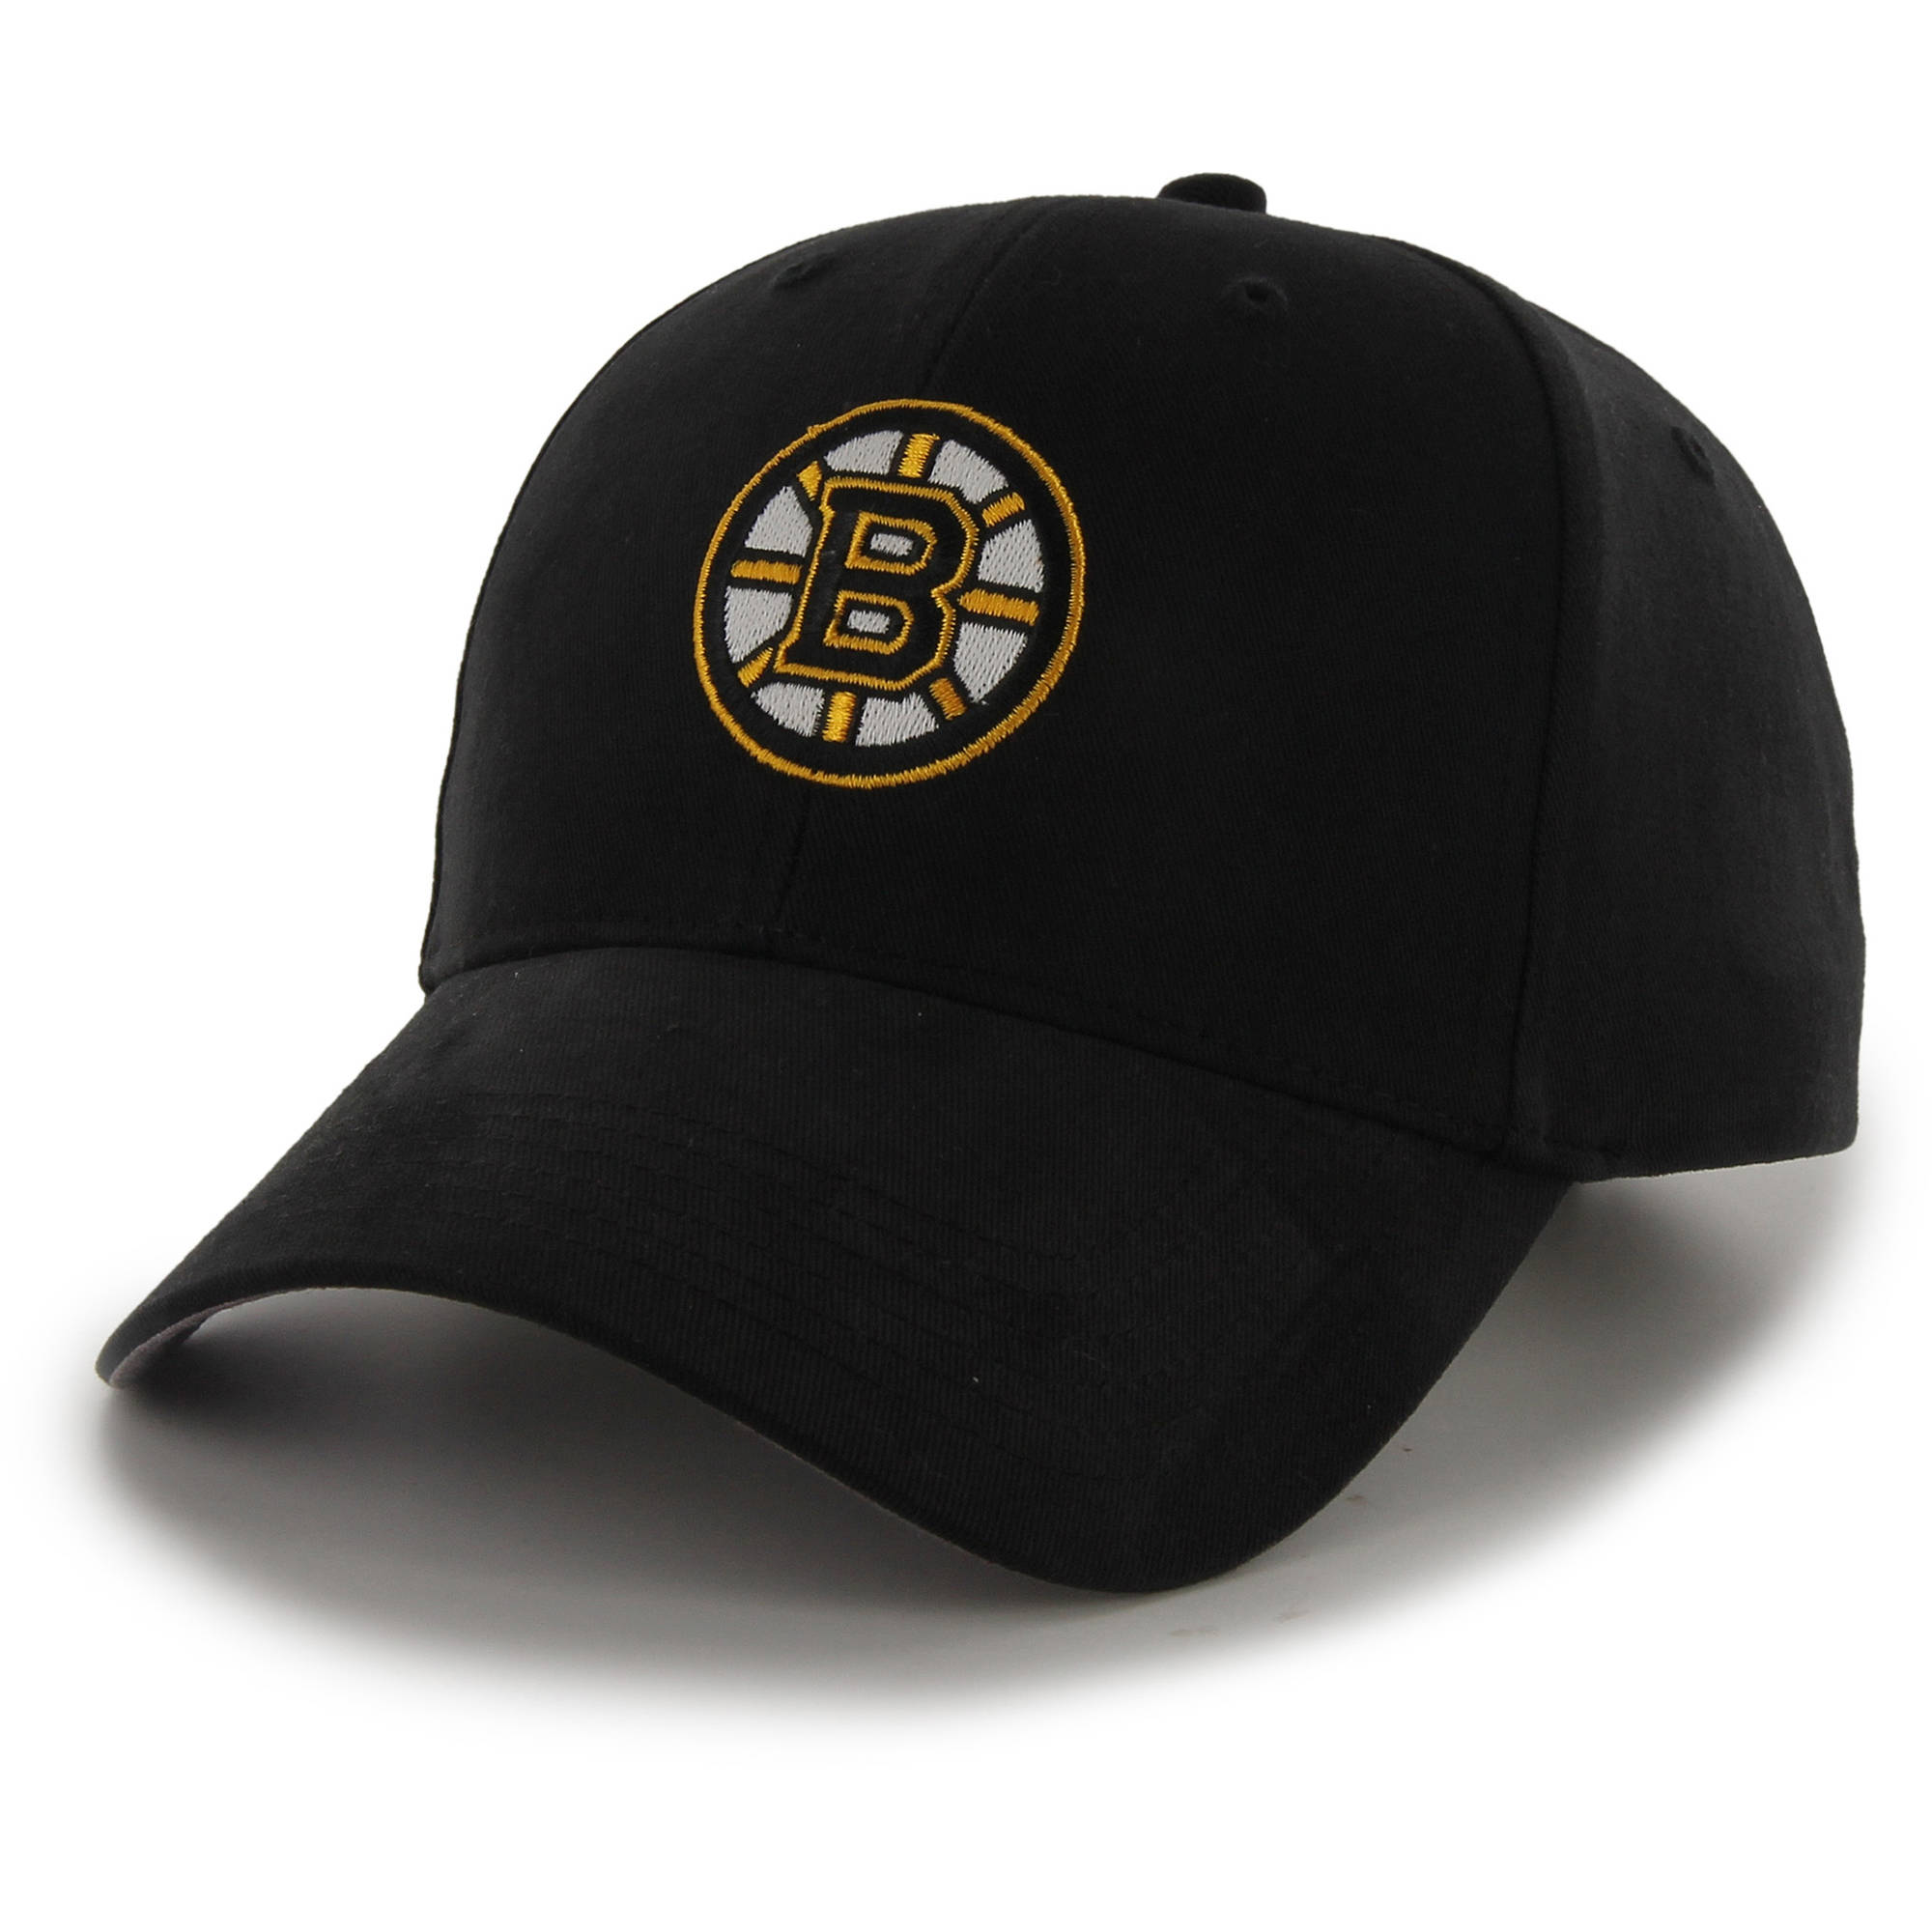 NHL Boston Bruins Basic Cap   Hat by Fan Favorite by Overstock